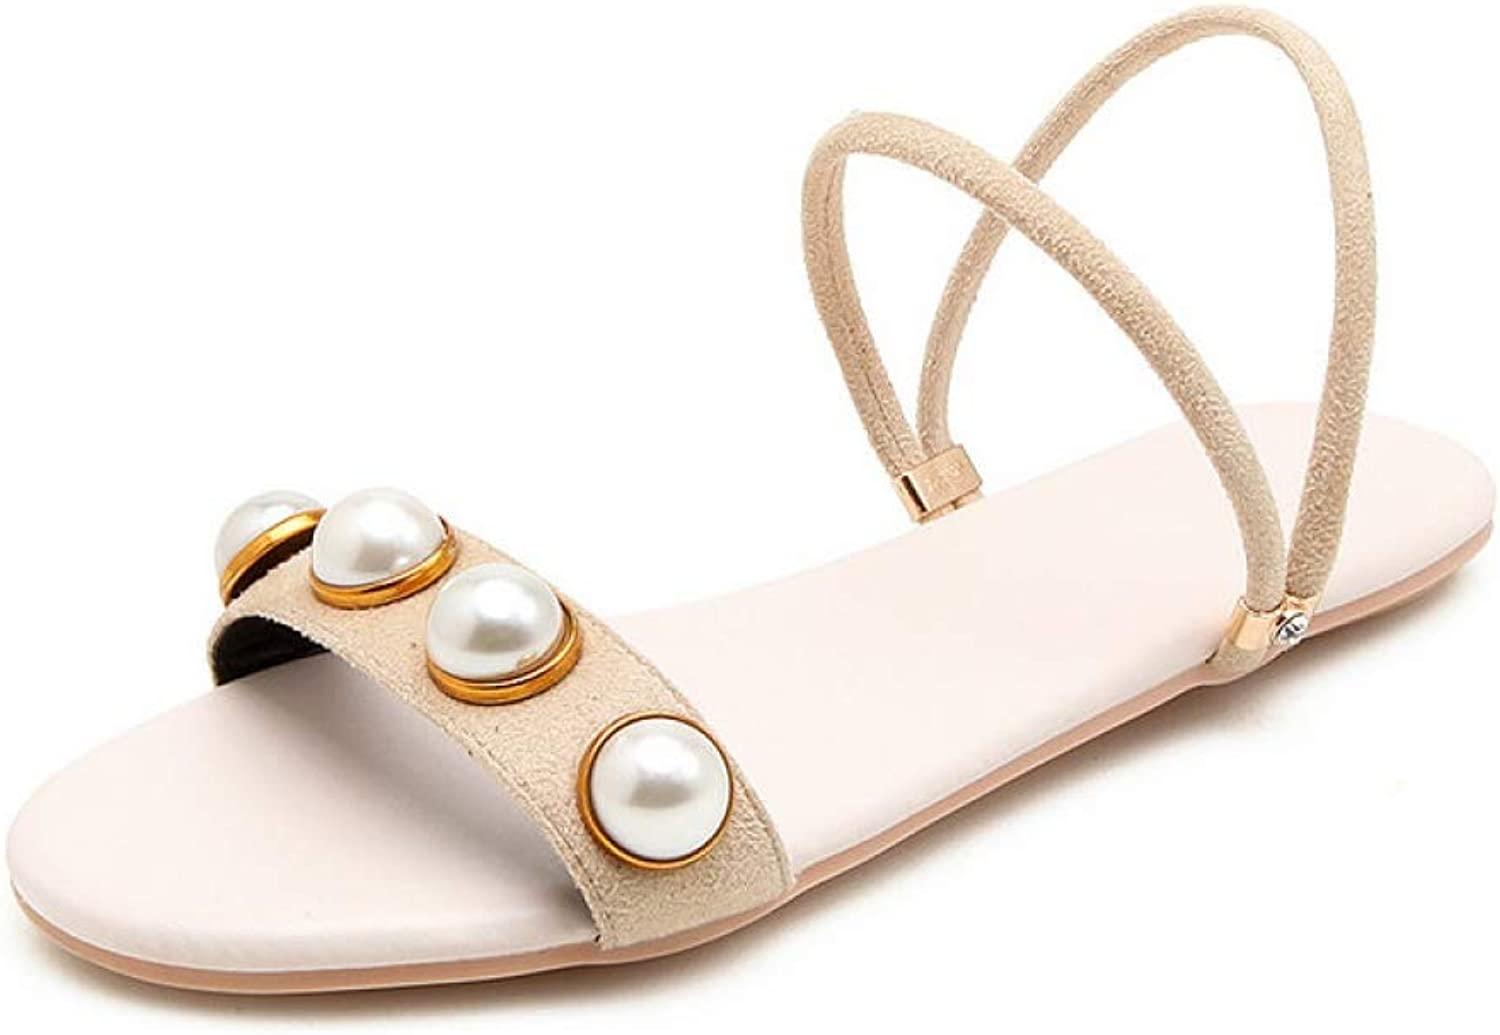 JOYBI Women's Flat Slides Sandals Pearl Open Toe Suede Slingback Soft Outdoor Beach Casual Dress Party Sandal